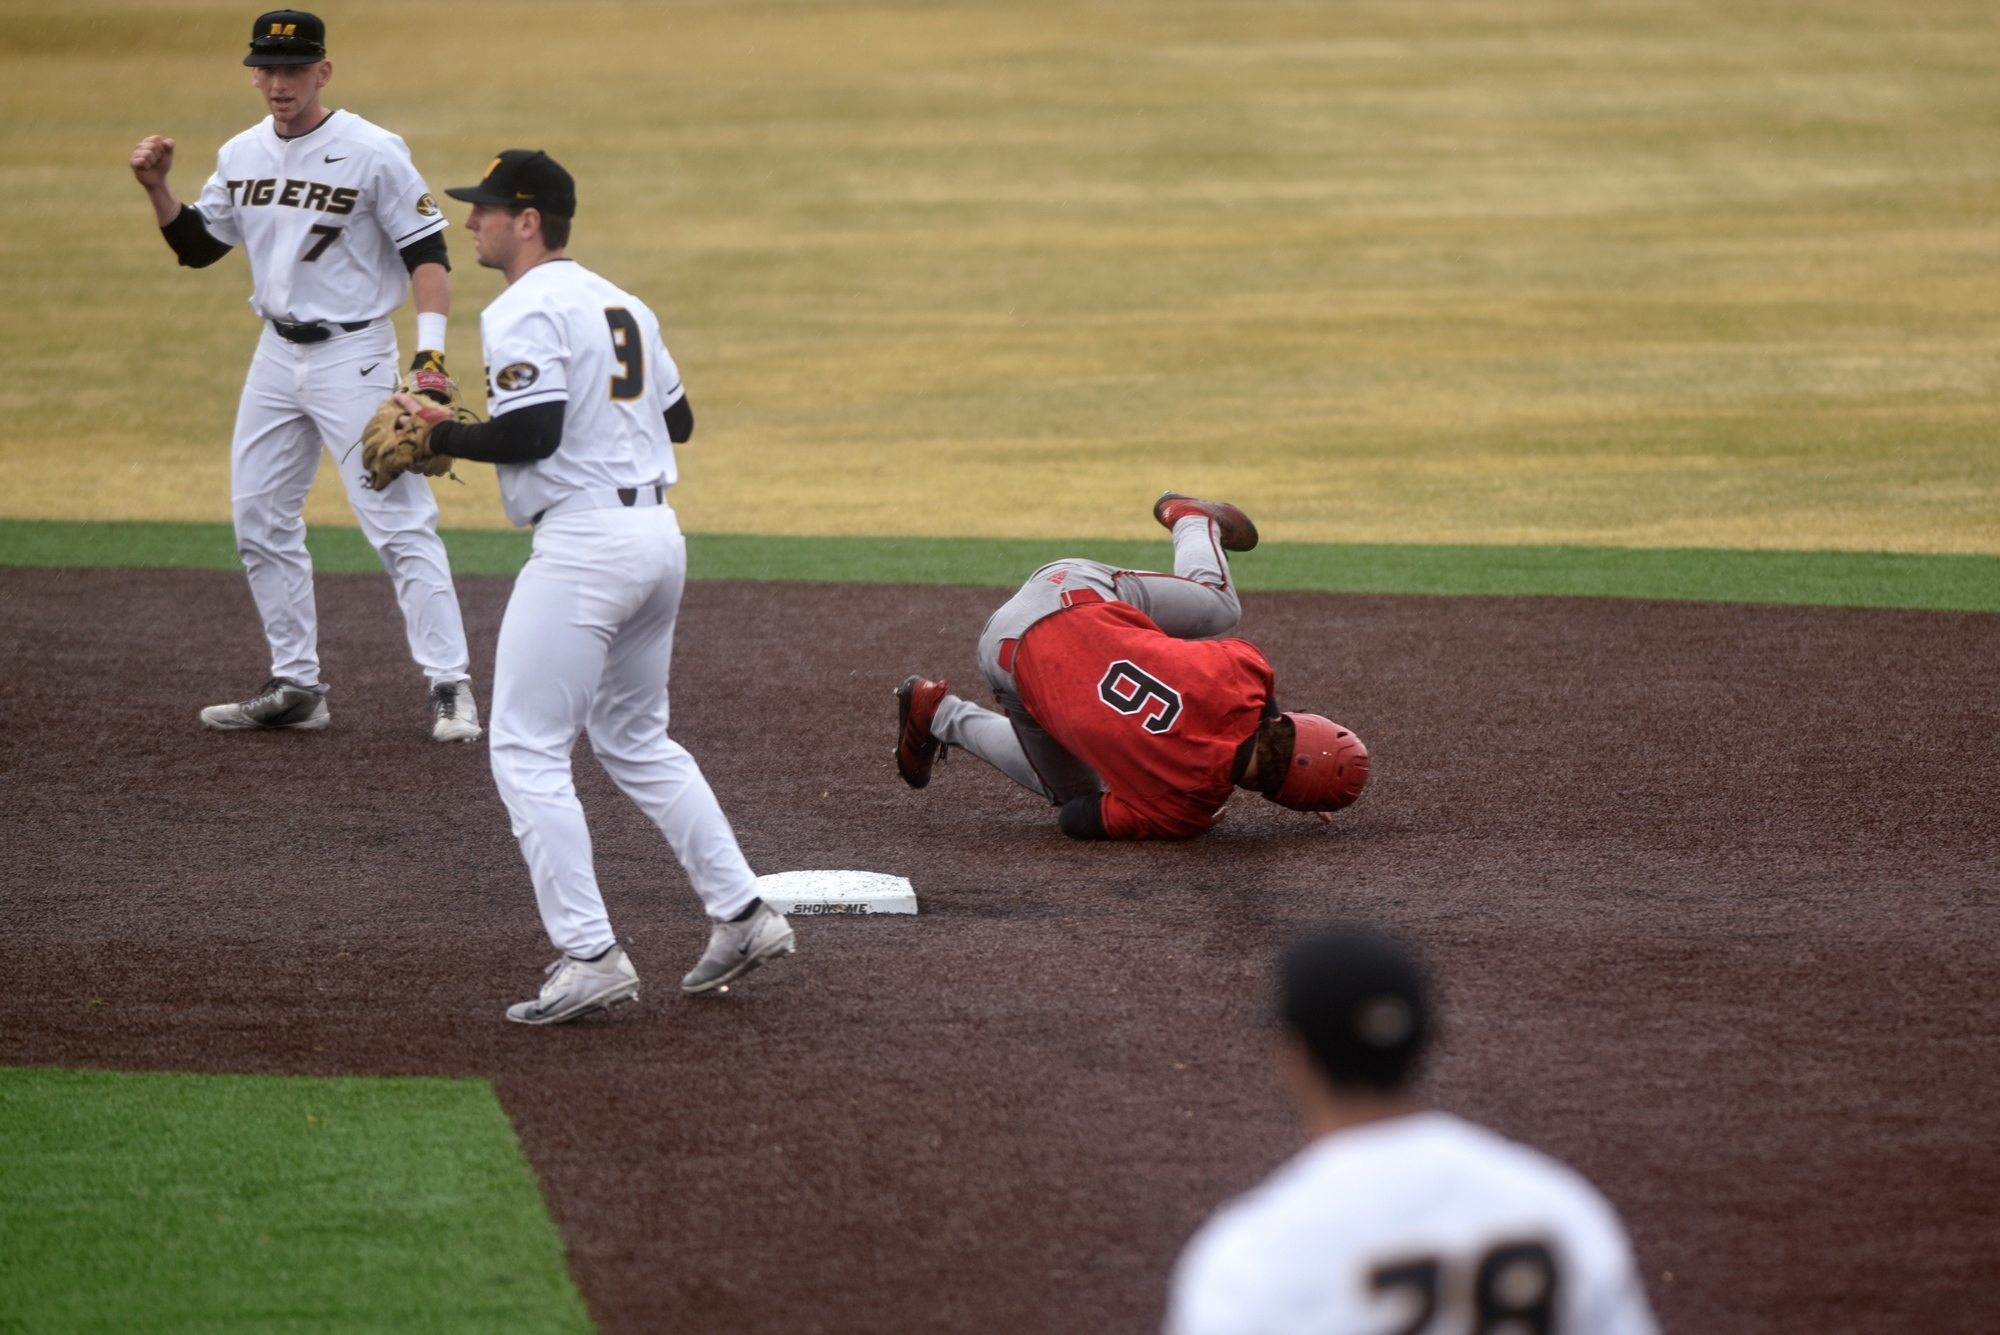 As Missouri midfielders Chris Cornelius, left, and Mark Vierling, center, watch for a throw from the Missouri catcher, Arkansas State's Will Zimmerman summersaults past second base during a game on Wednesday, March 13, 2019 at Taylor Stadium. The Tigers' next game will be on Friday against the Arkansas Razorbacks in Fayetteville.